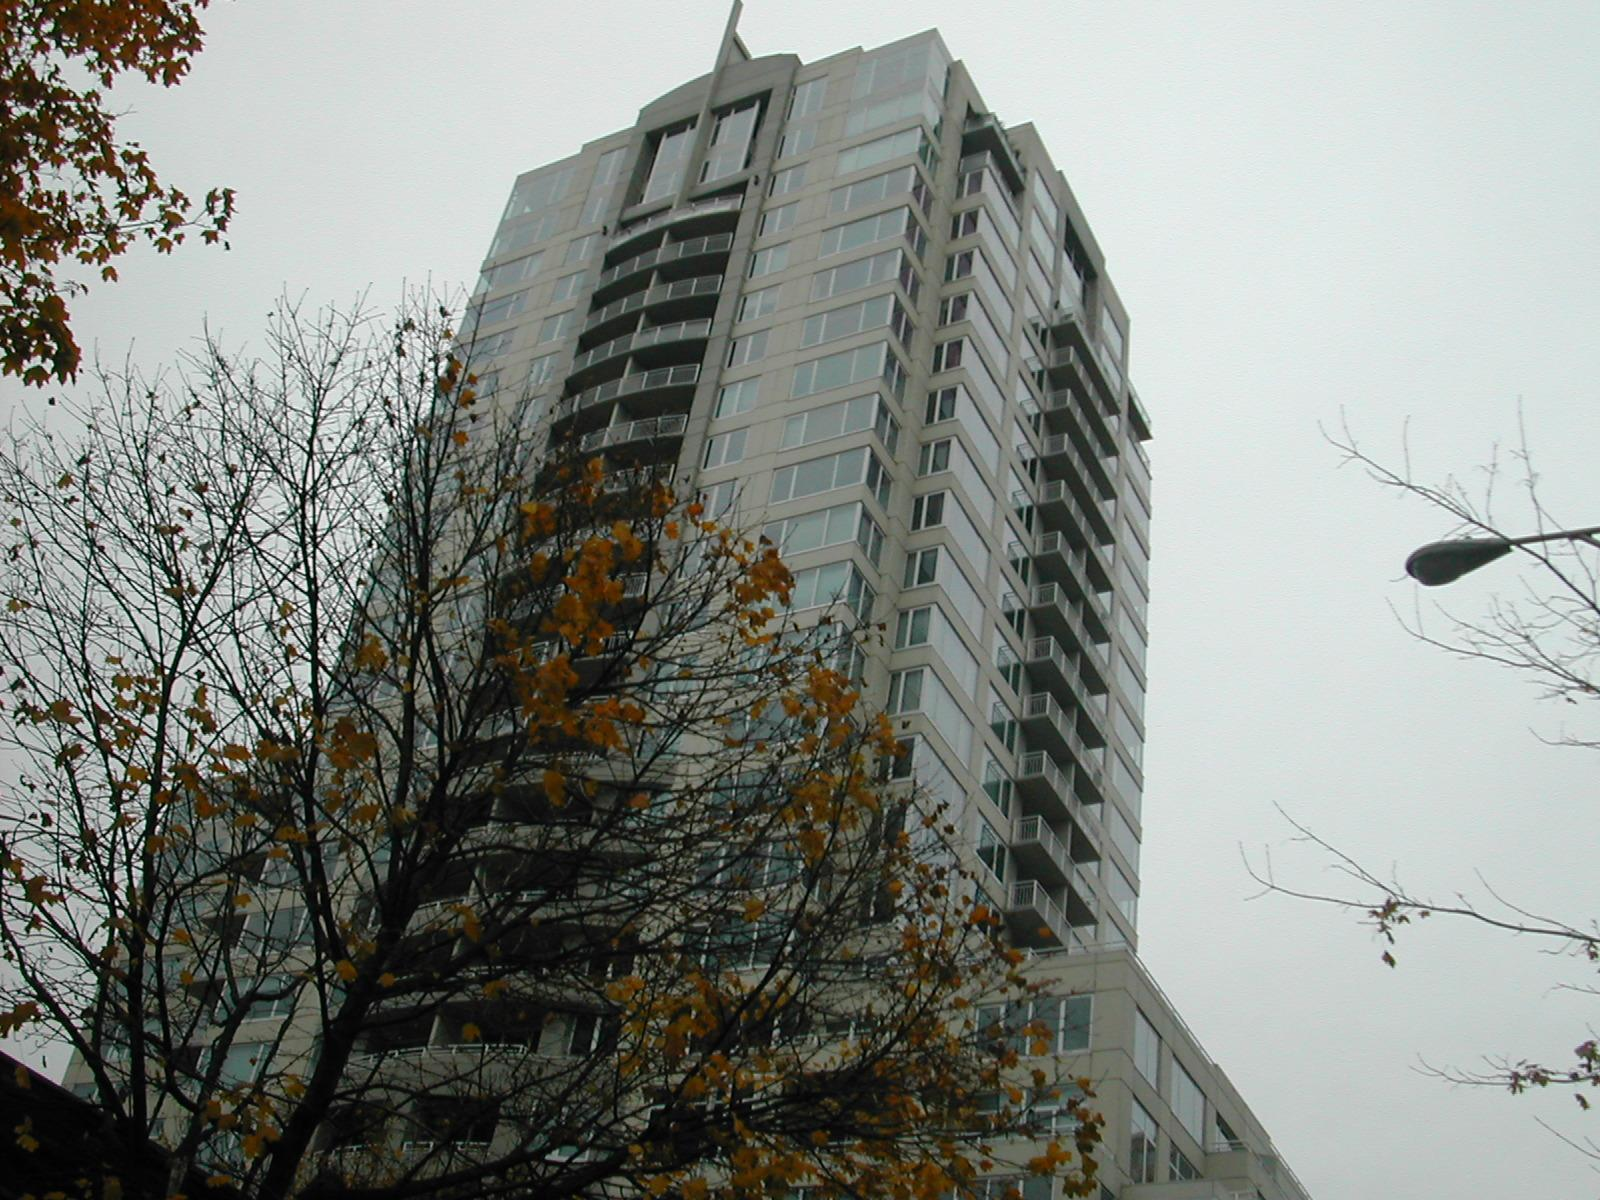 ForSaleByOwner (FSBO) home in Seattle, WA at ForSaleByOwnerBuyersGuide.com